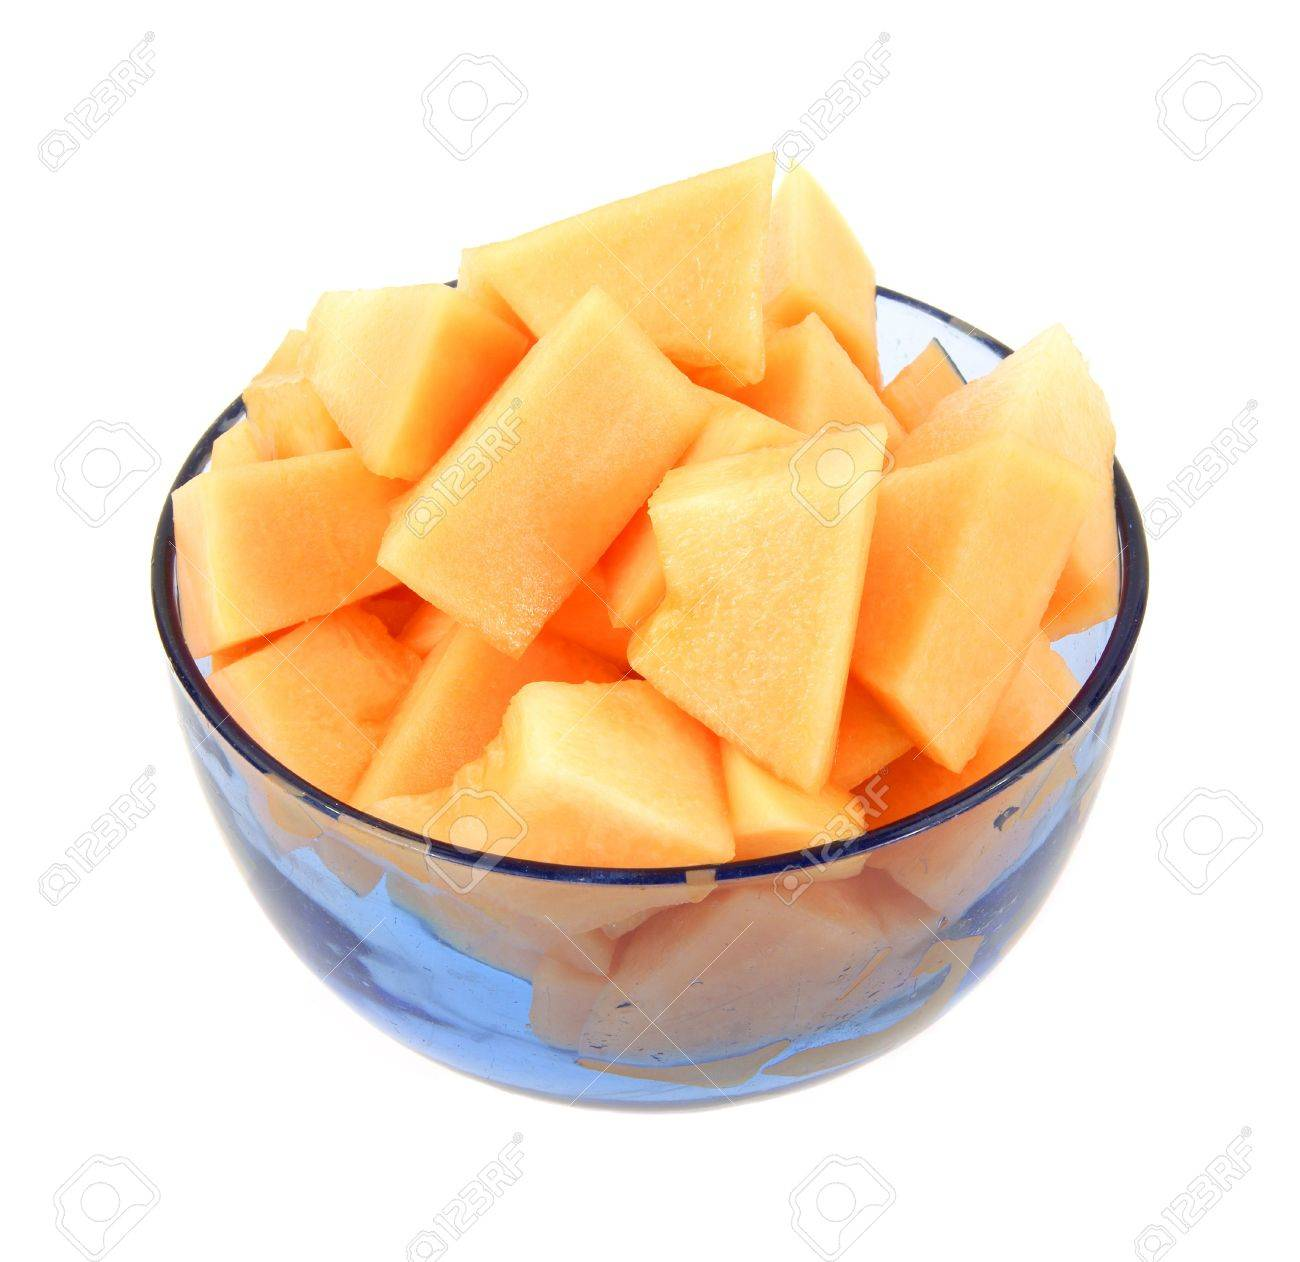 A Sliced Cantaloupe In A Blue Bowl Against A White Background Stock Photo Picture And Royalty Free Image Image 6447847 Learn how to prepare this easy cantaloupe yogurt bowl recipe like a pro. a sliced cantaloupe in a blue bowl against a white background